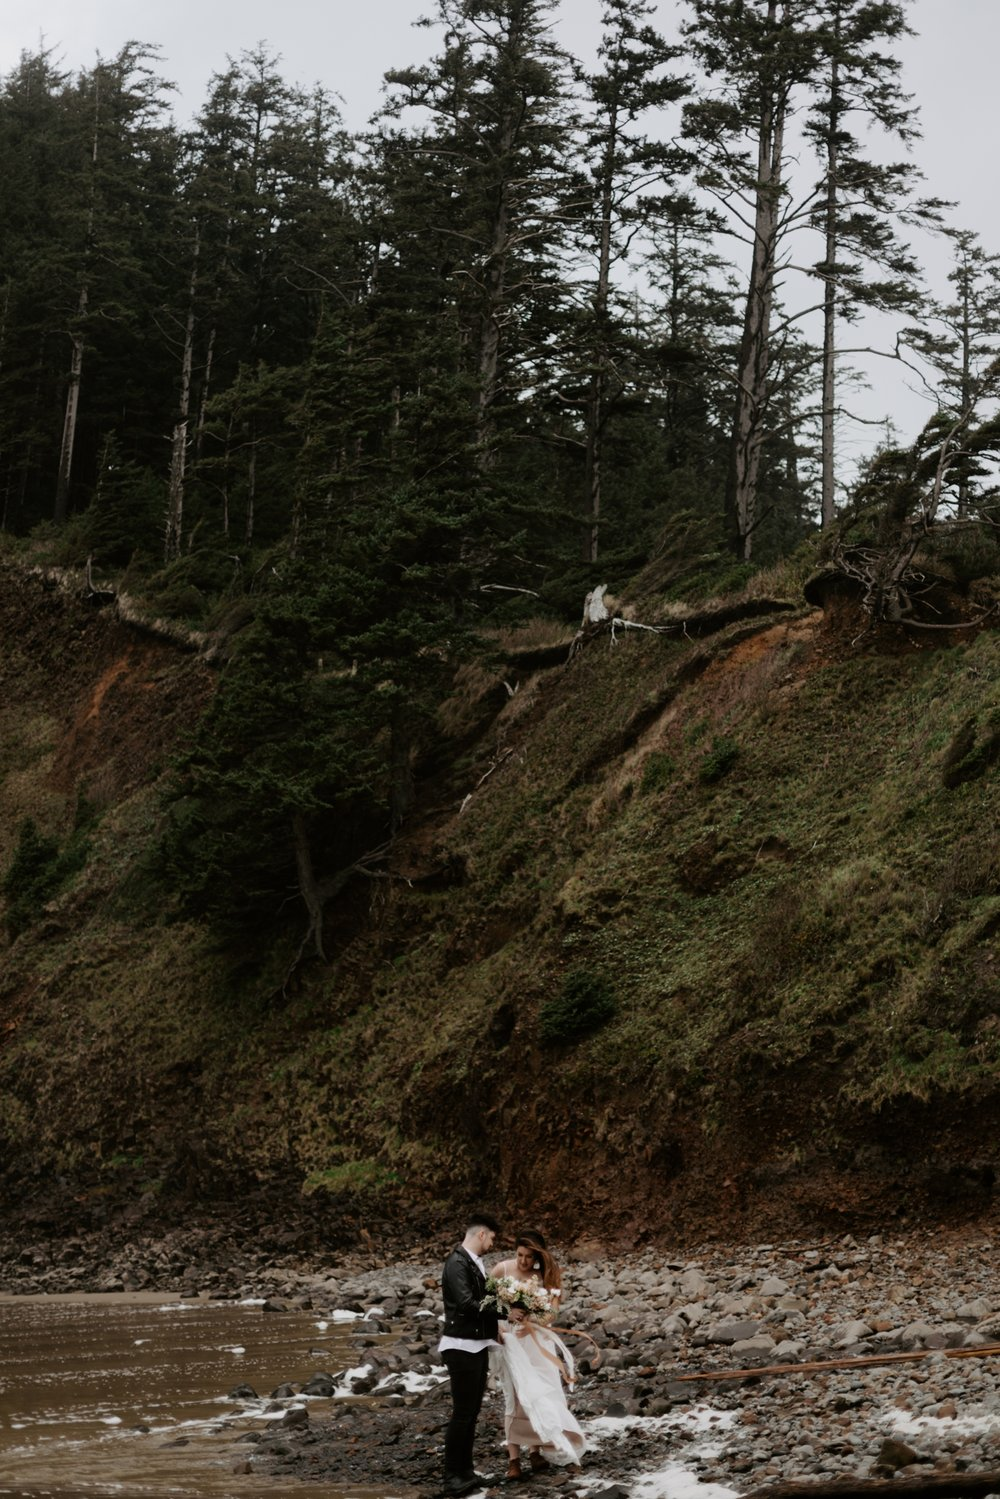 intimate-oregon-coast-elopement-2018-04-26_0003.jpg